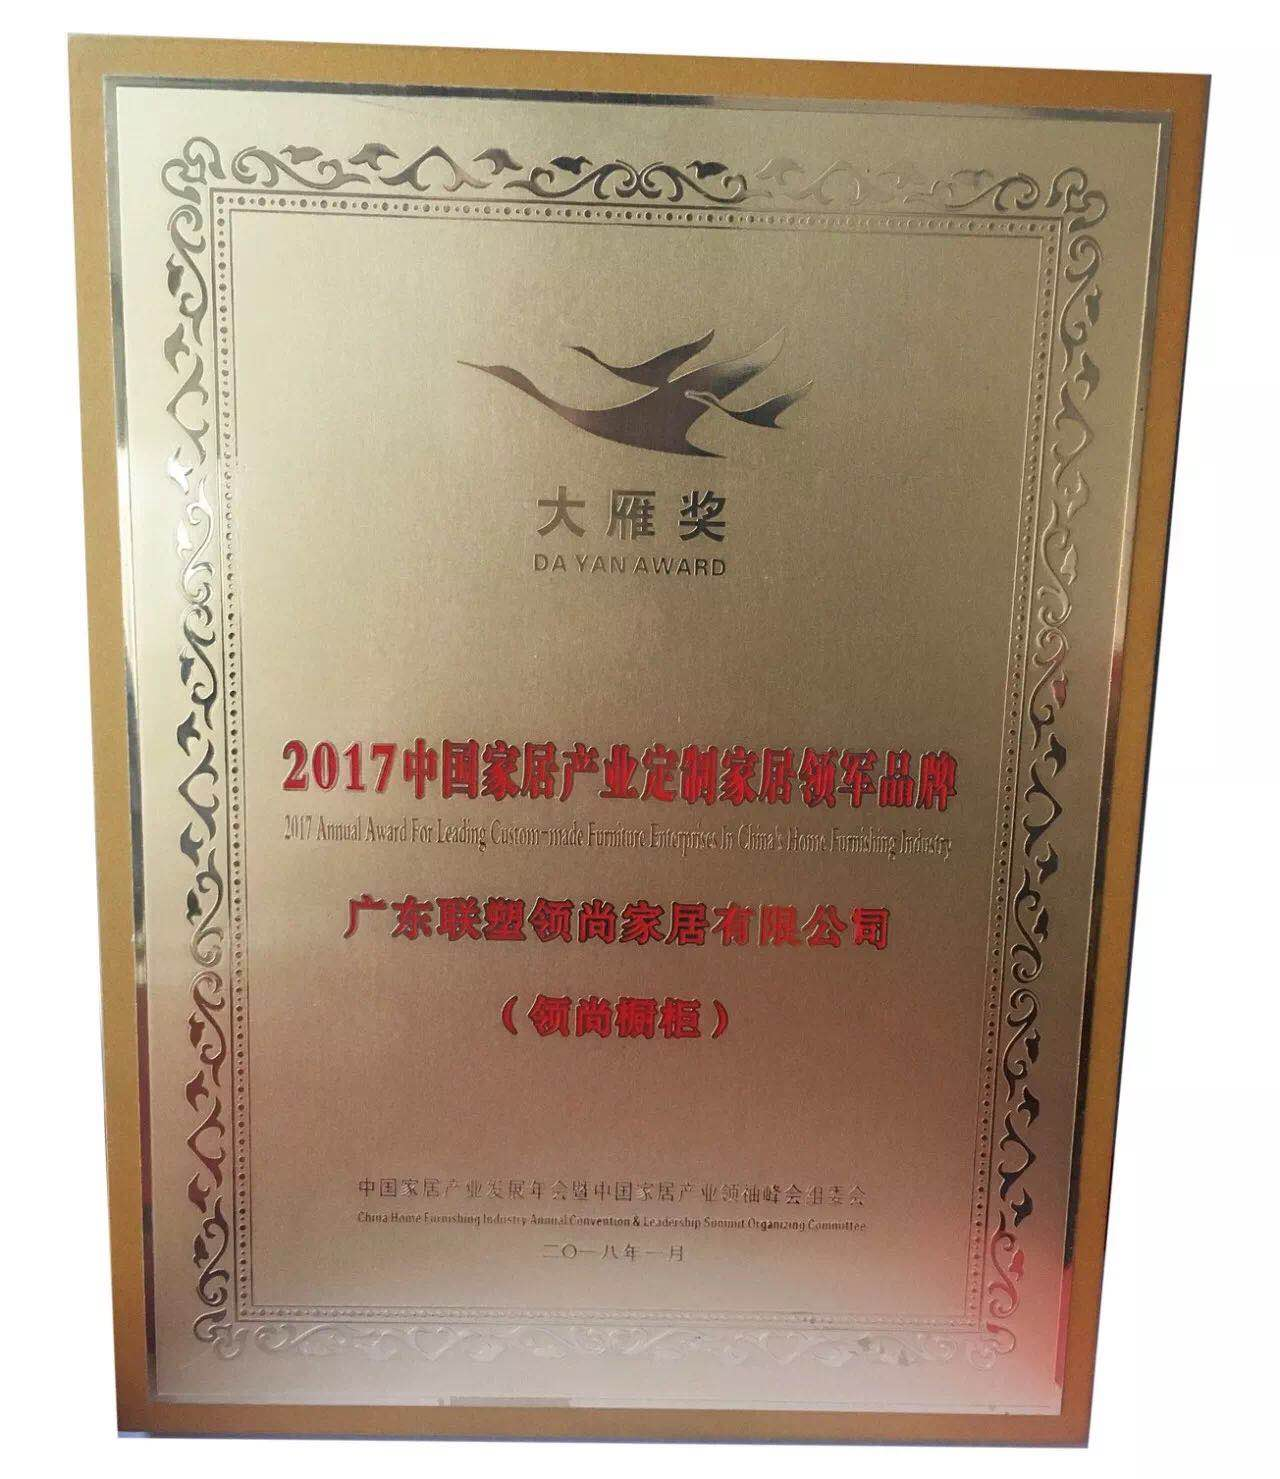 Lesso 2017 Annual Award For Leading Custom-made Furniture Enterprise In China's Home Furnishing Industry